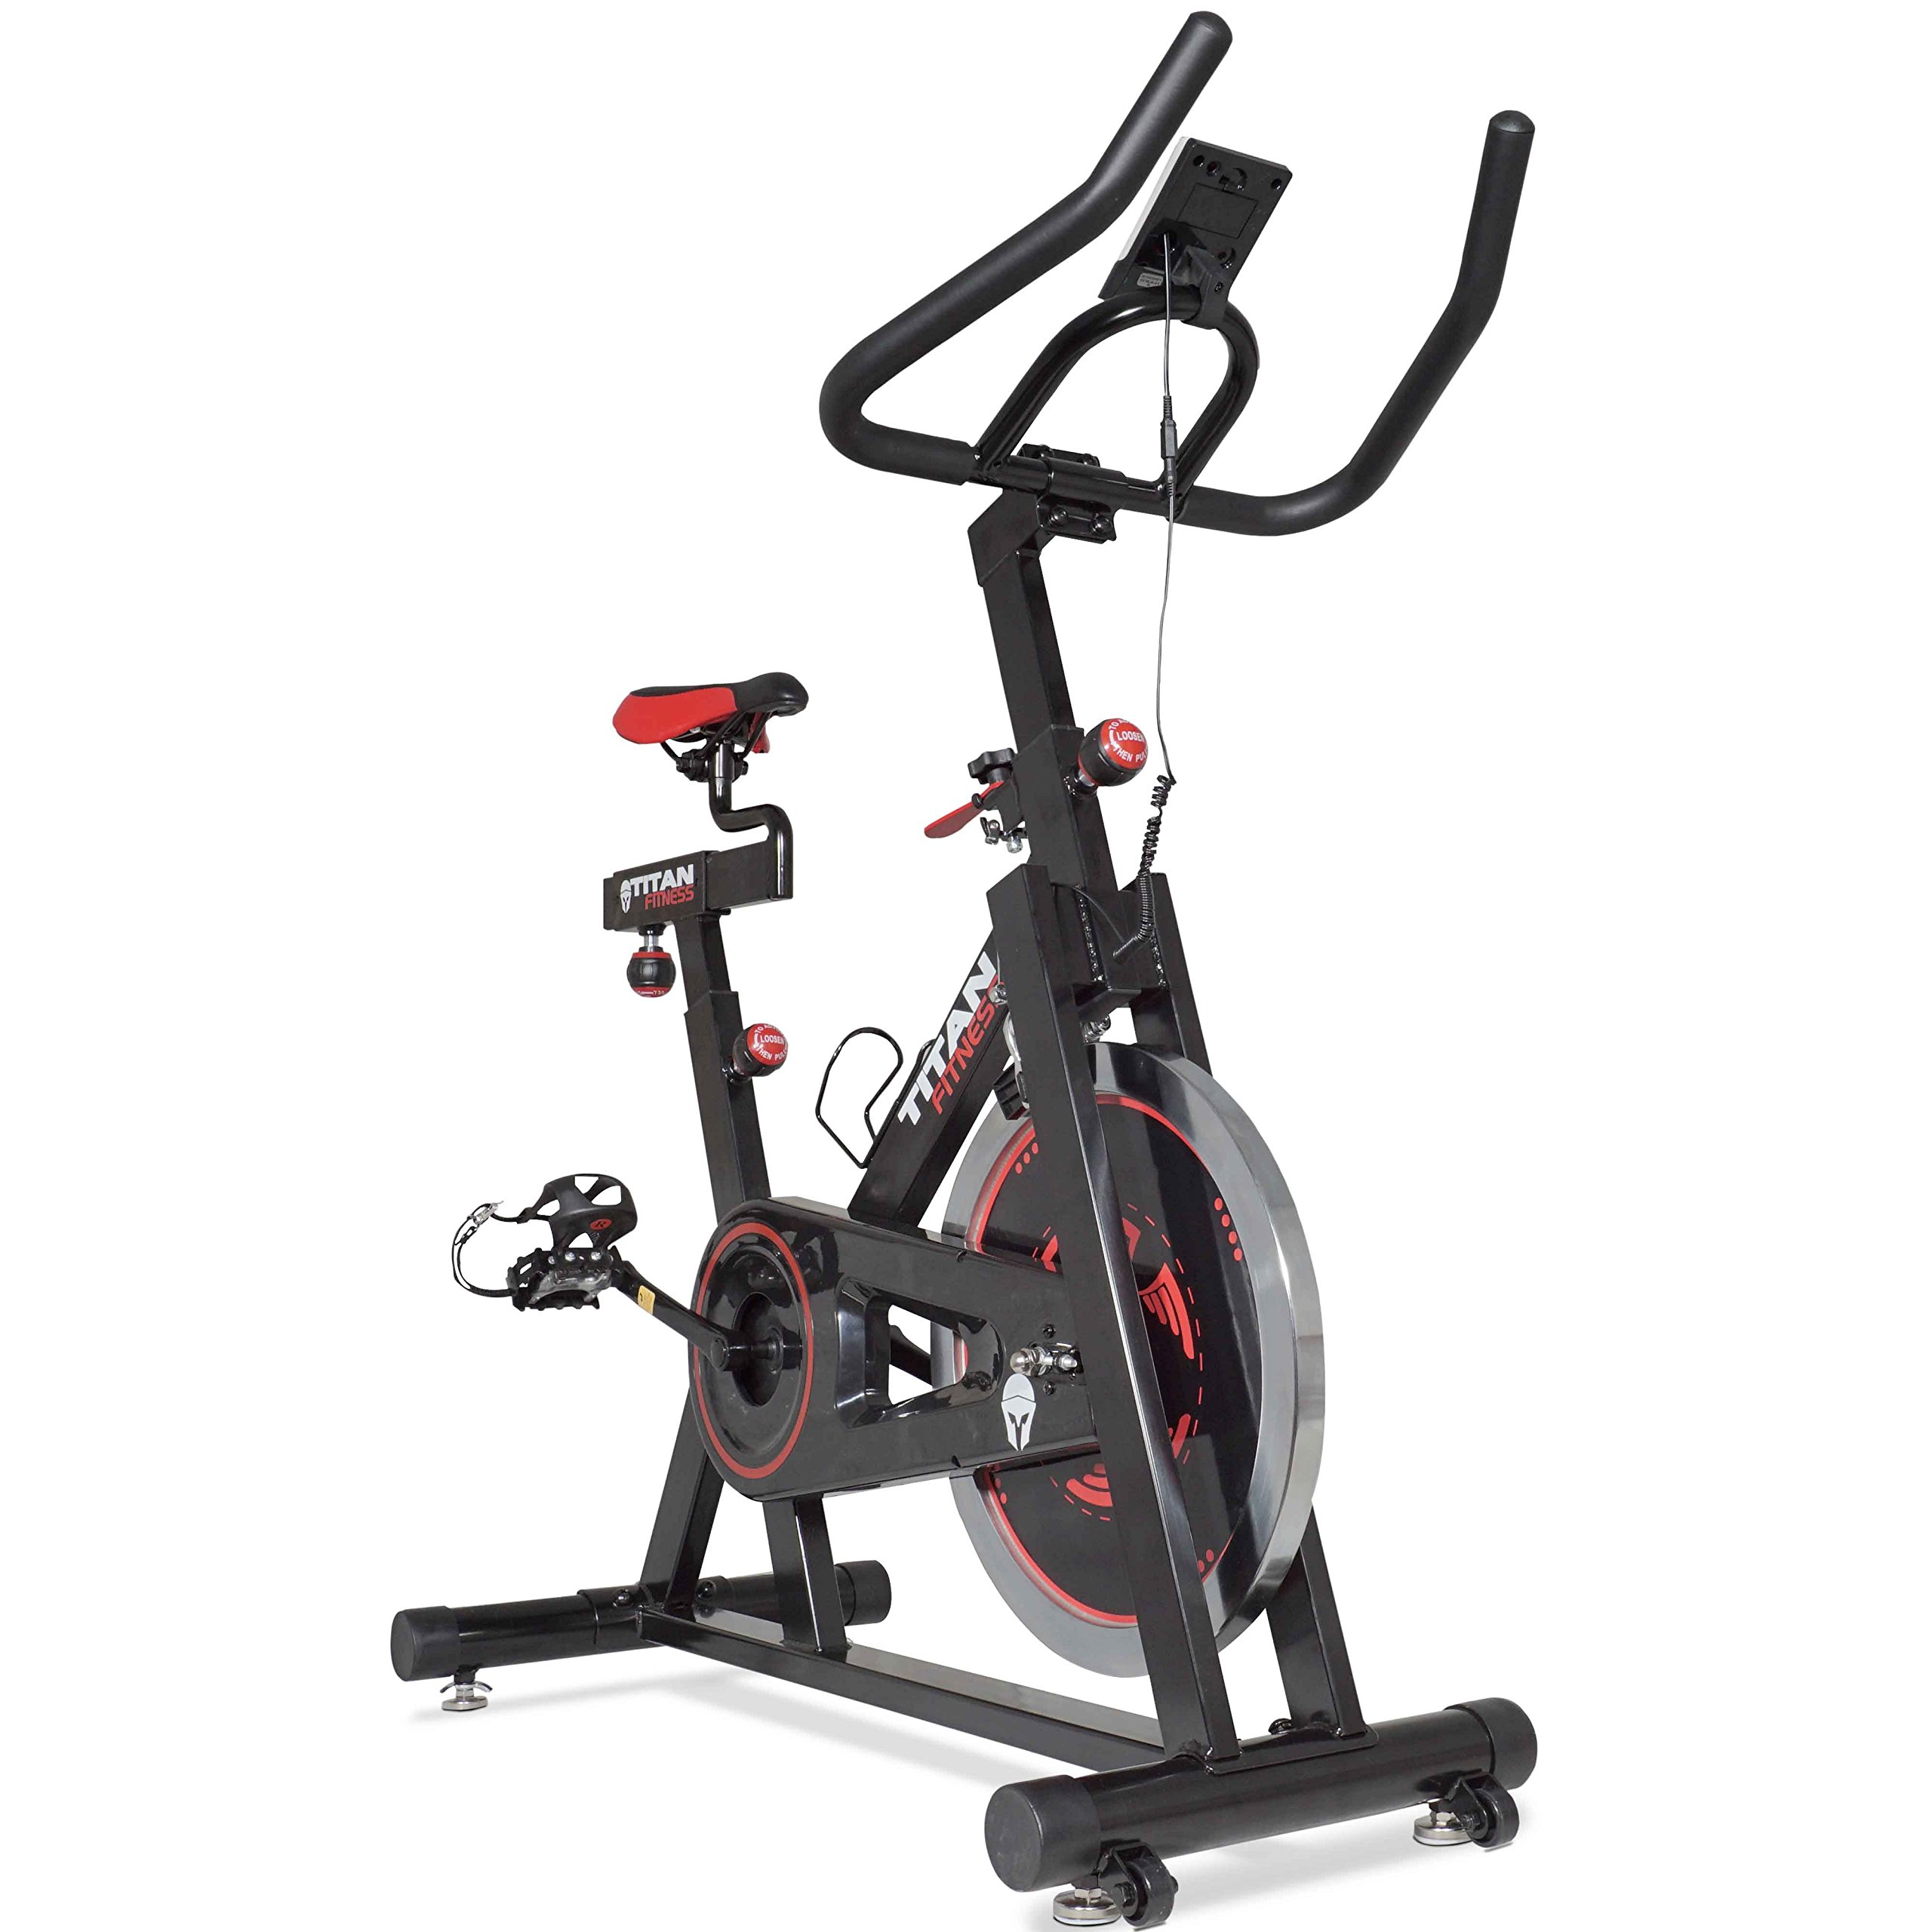 Titan Pro Indoor Exercise Bike w/ 40 lb Flywheel LCD Cycle Cardio Fitness by Titan Fitness (Image #4)